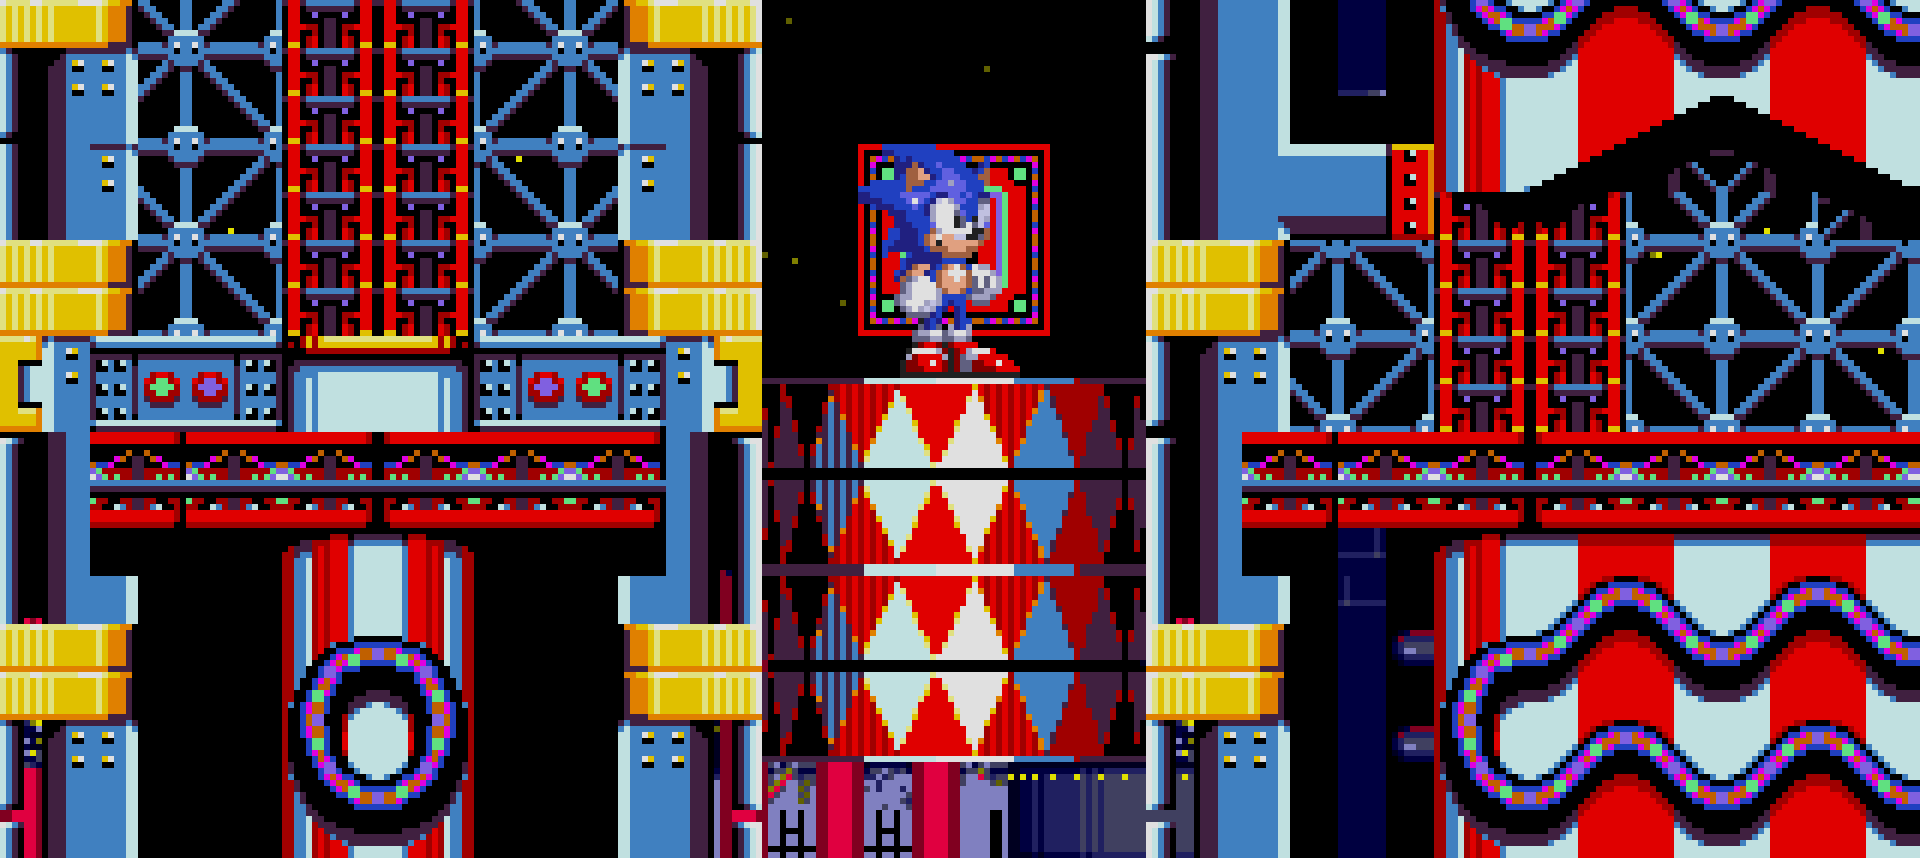 Carnival Night Zone Sonic The Hedgehog 3 Gametripper Music Review